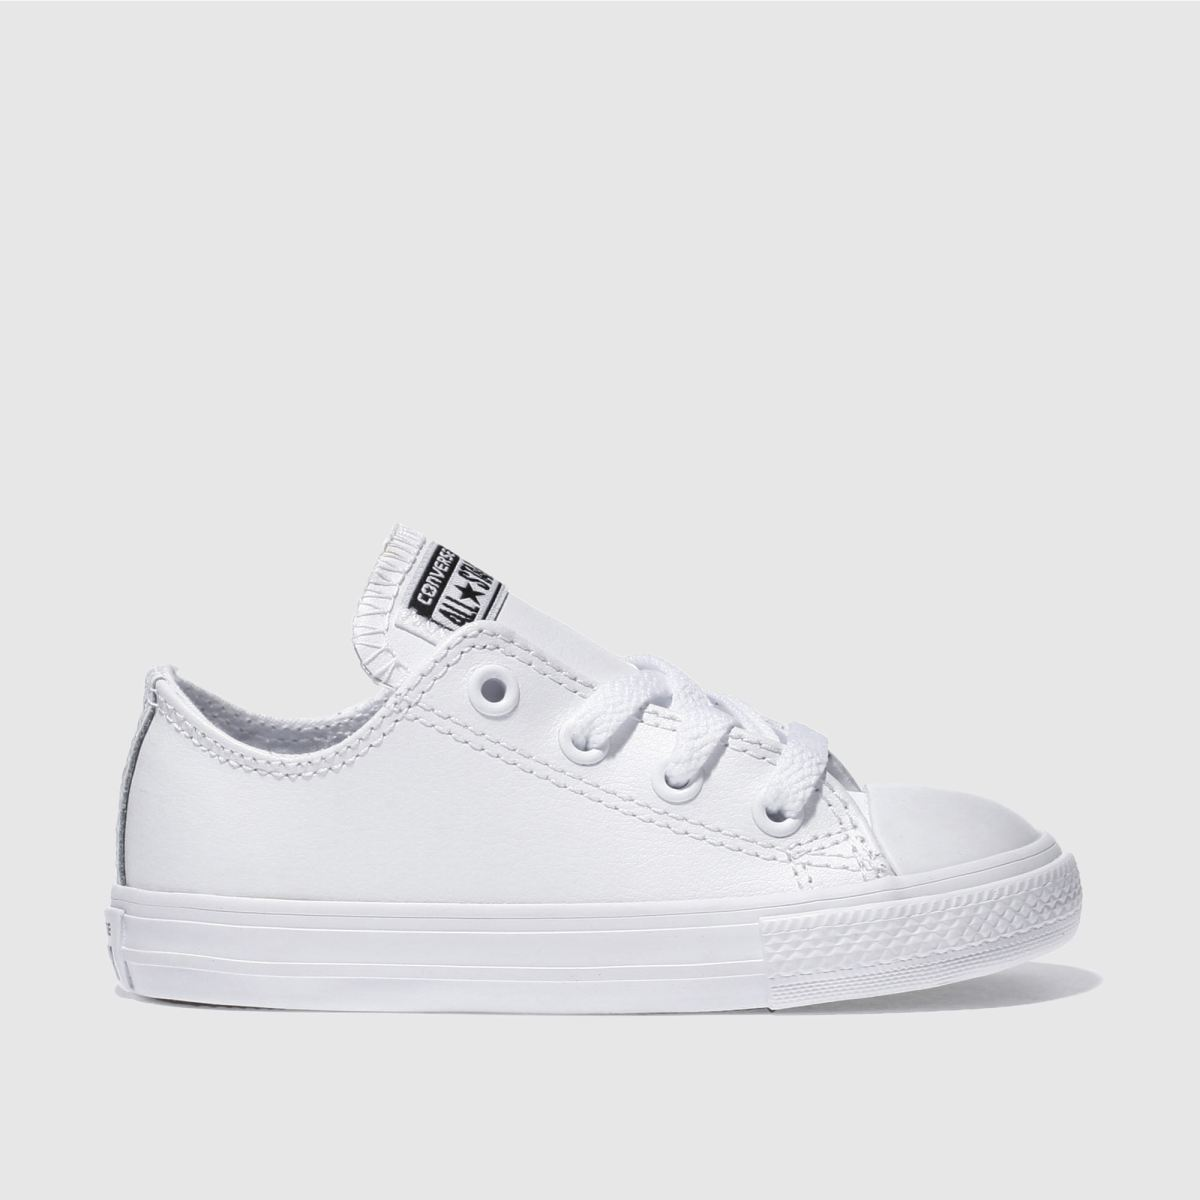 converse white all star ox leather Toddler Trainers